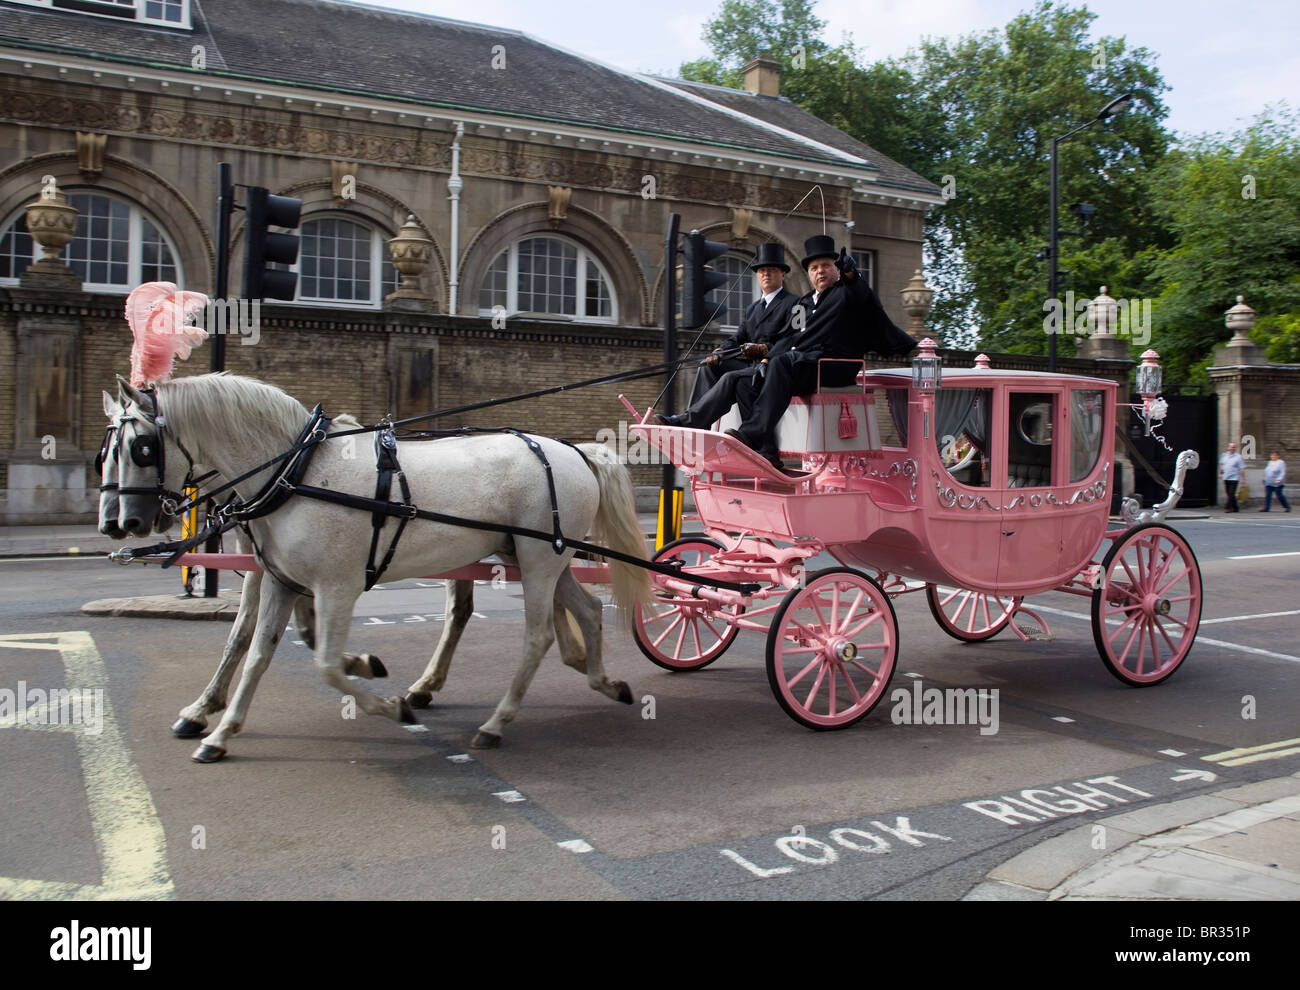 Horse and Carriage London England UK - Stock Image